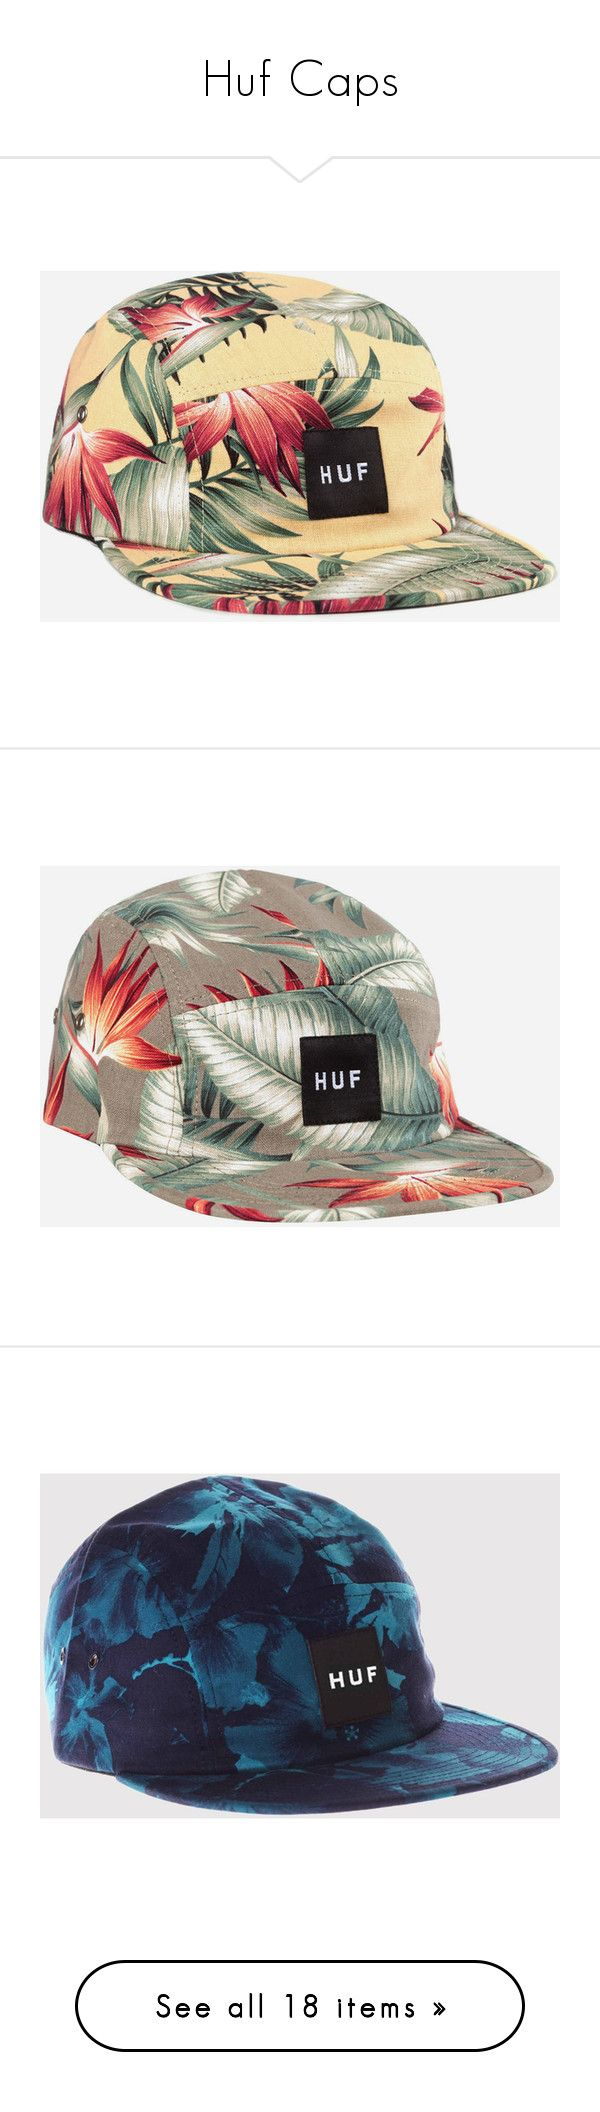 """""""Huf Caps"""" by janettetang ❤ liked on Polyvore featuring men's fashion, men's accessories, men's hats, hats, yellow, mens summer hats, mens 5 panel hat, linh vu, olive and electric blue"""